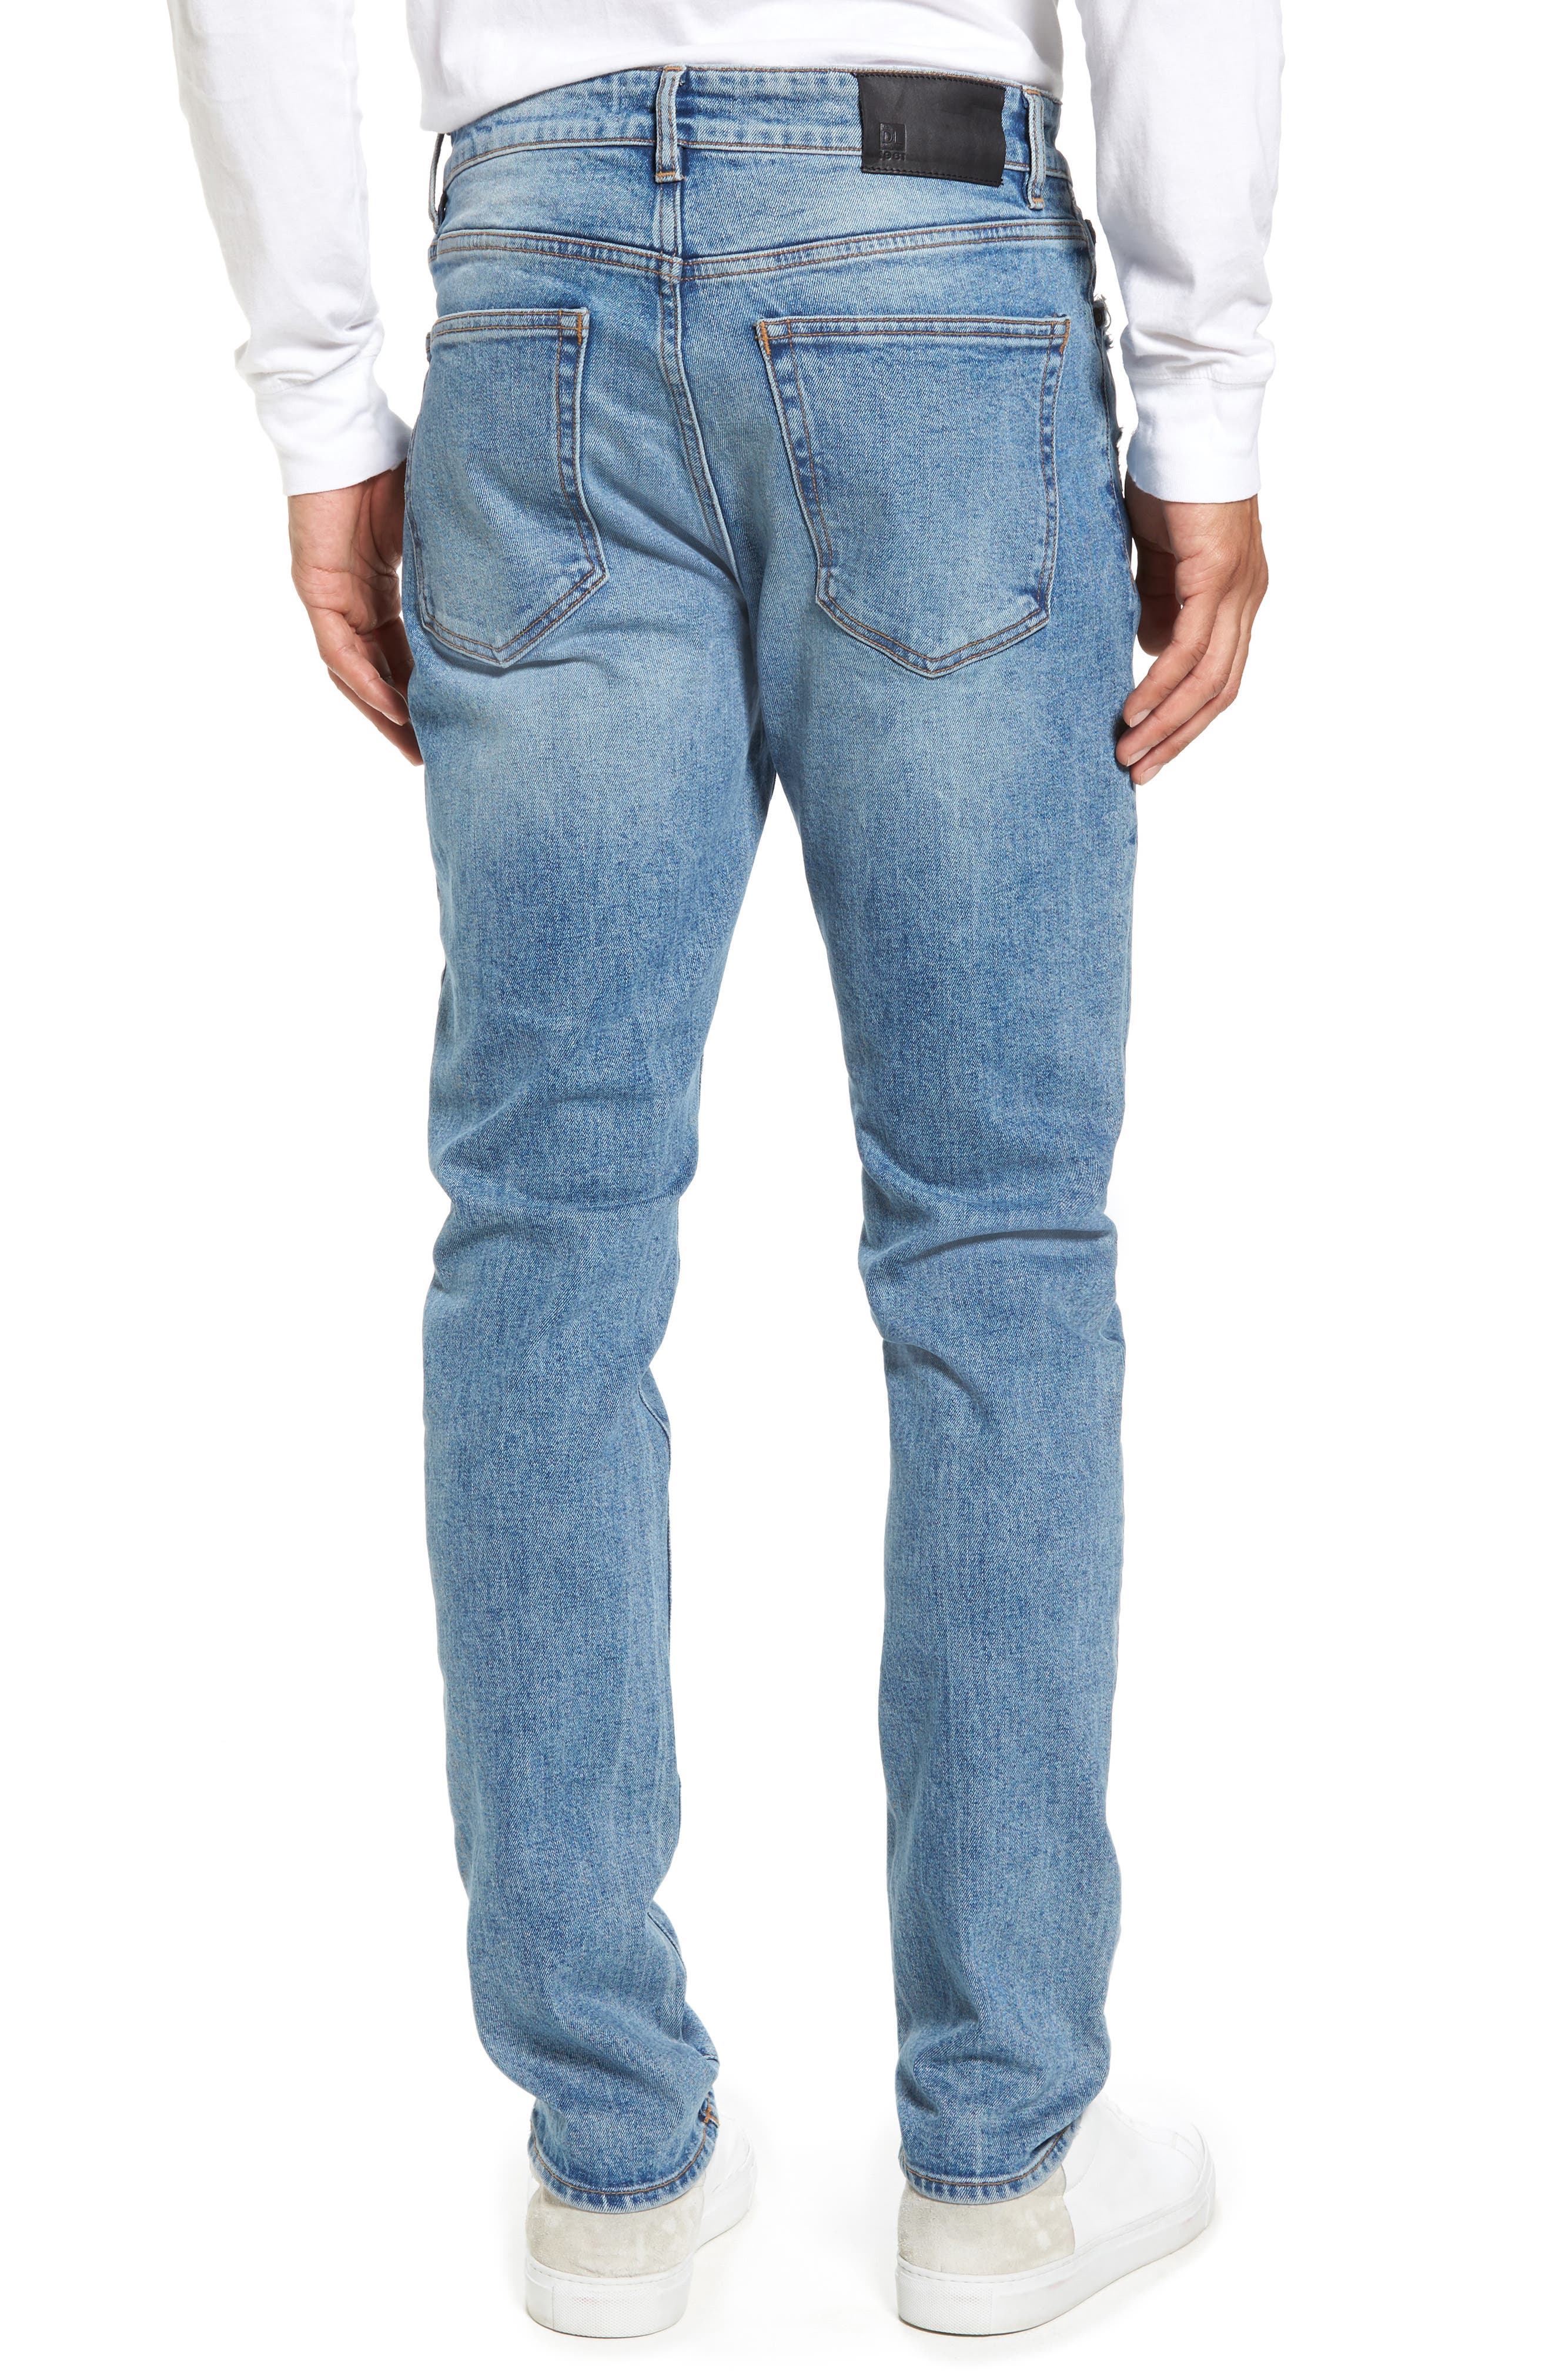 Cooper Slouchy Skinny Jeans,                             Alternate thumbnail 2, color,                             Breathe